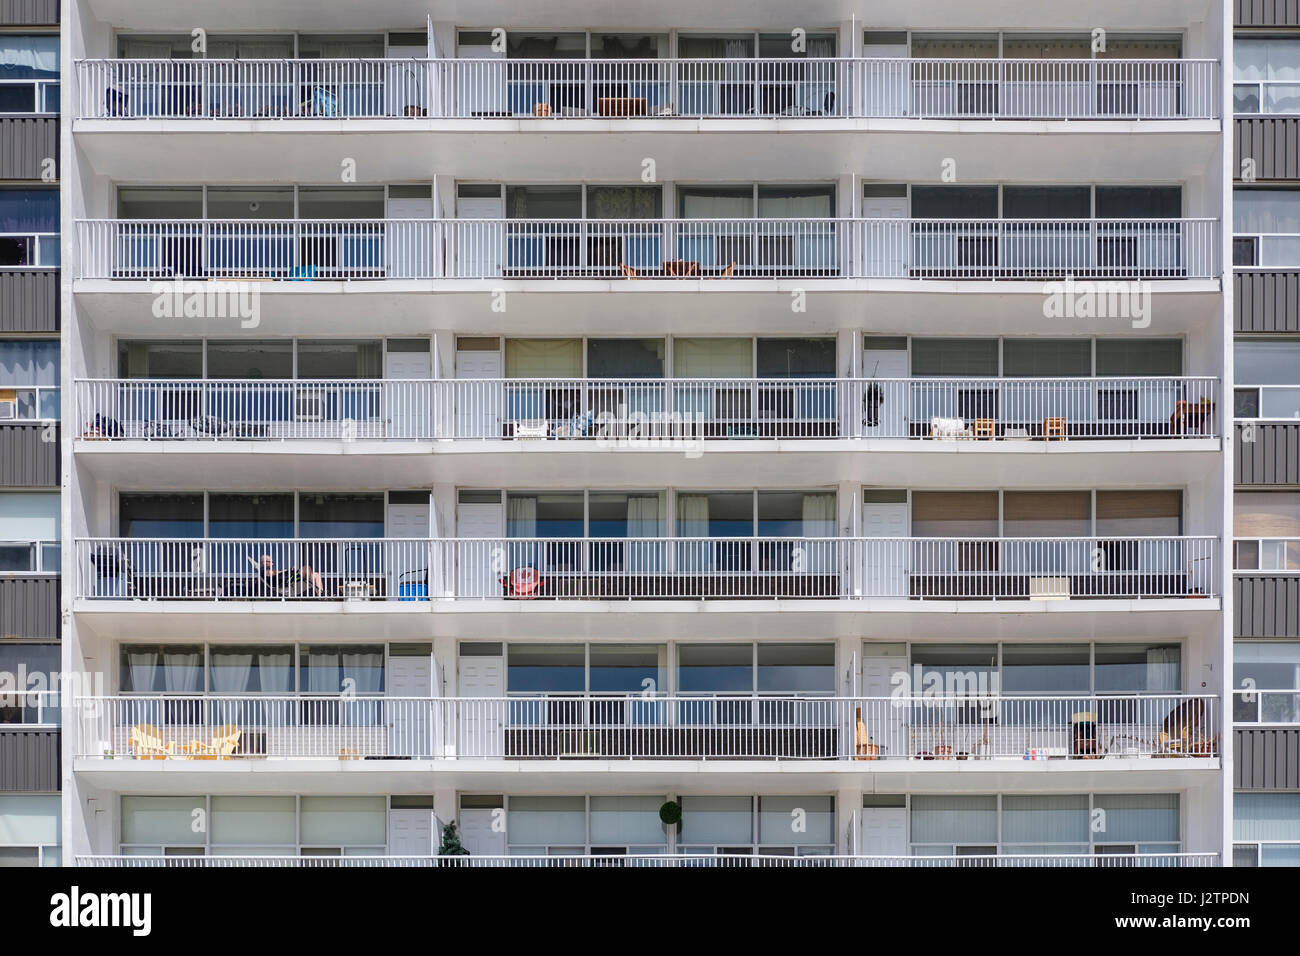 Facade of a condo building, highrise balconies, condominium living, urban living, London, Ontario, Canada. Stock Photo